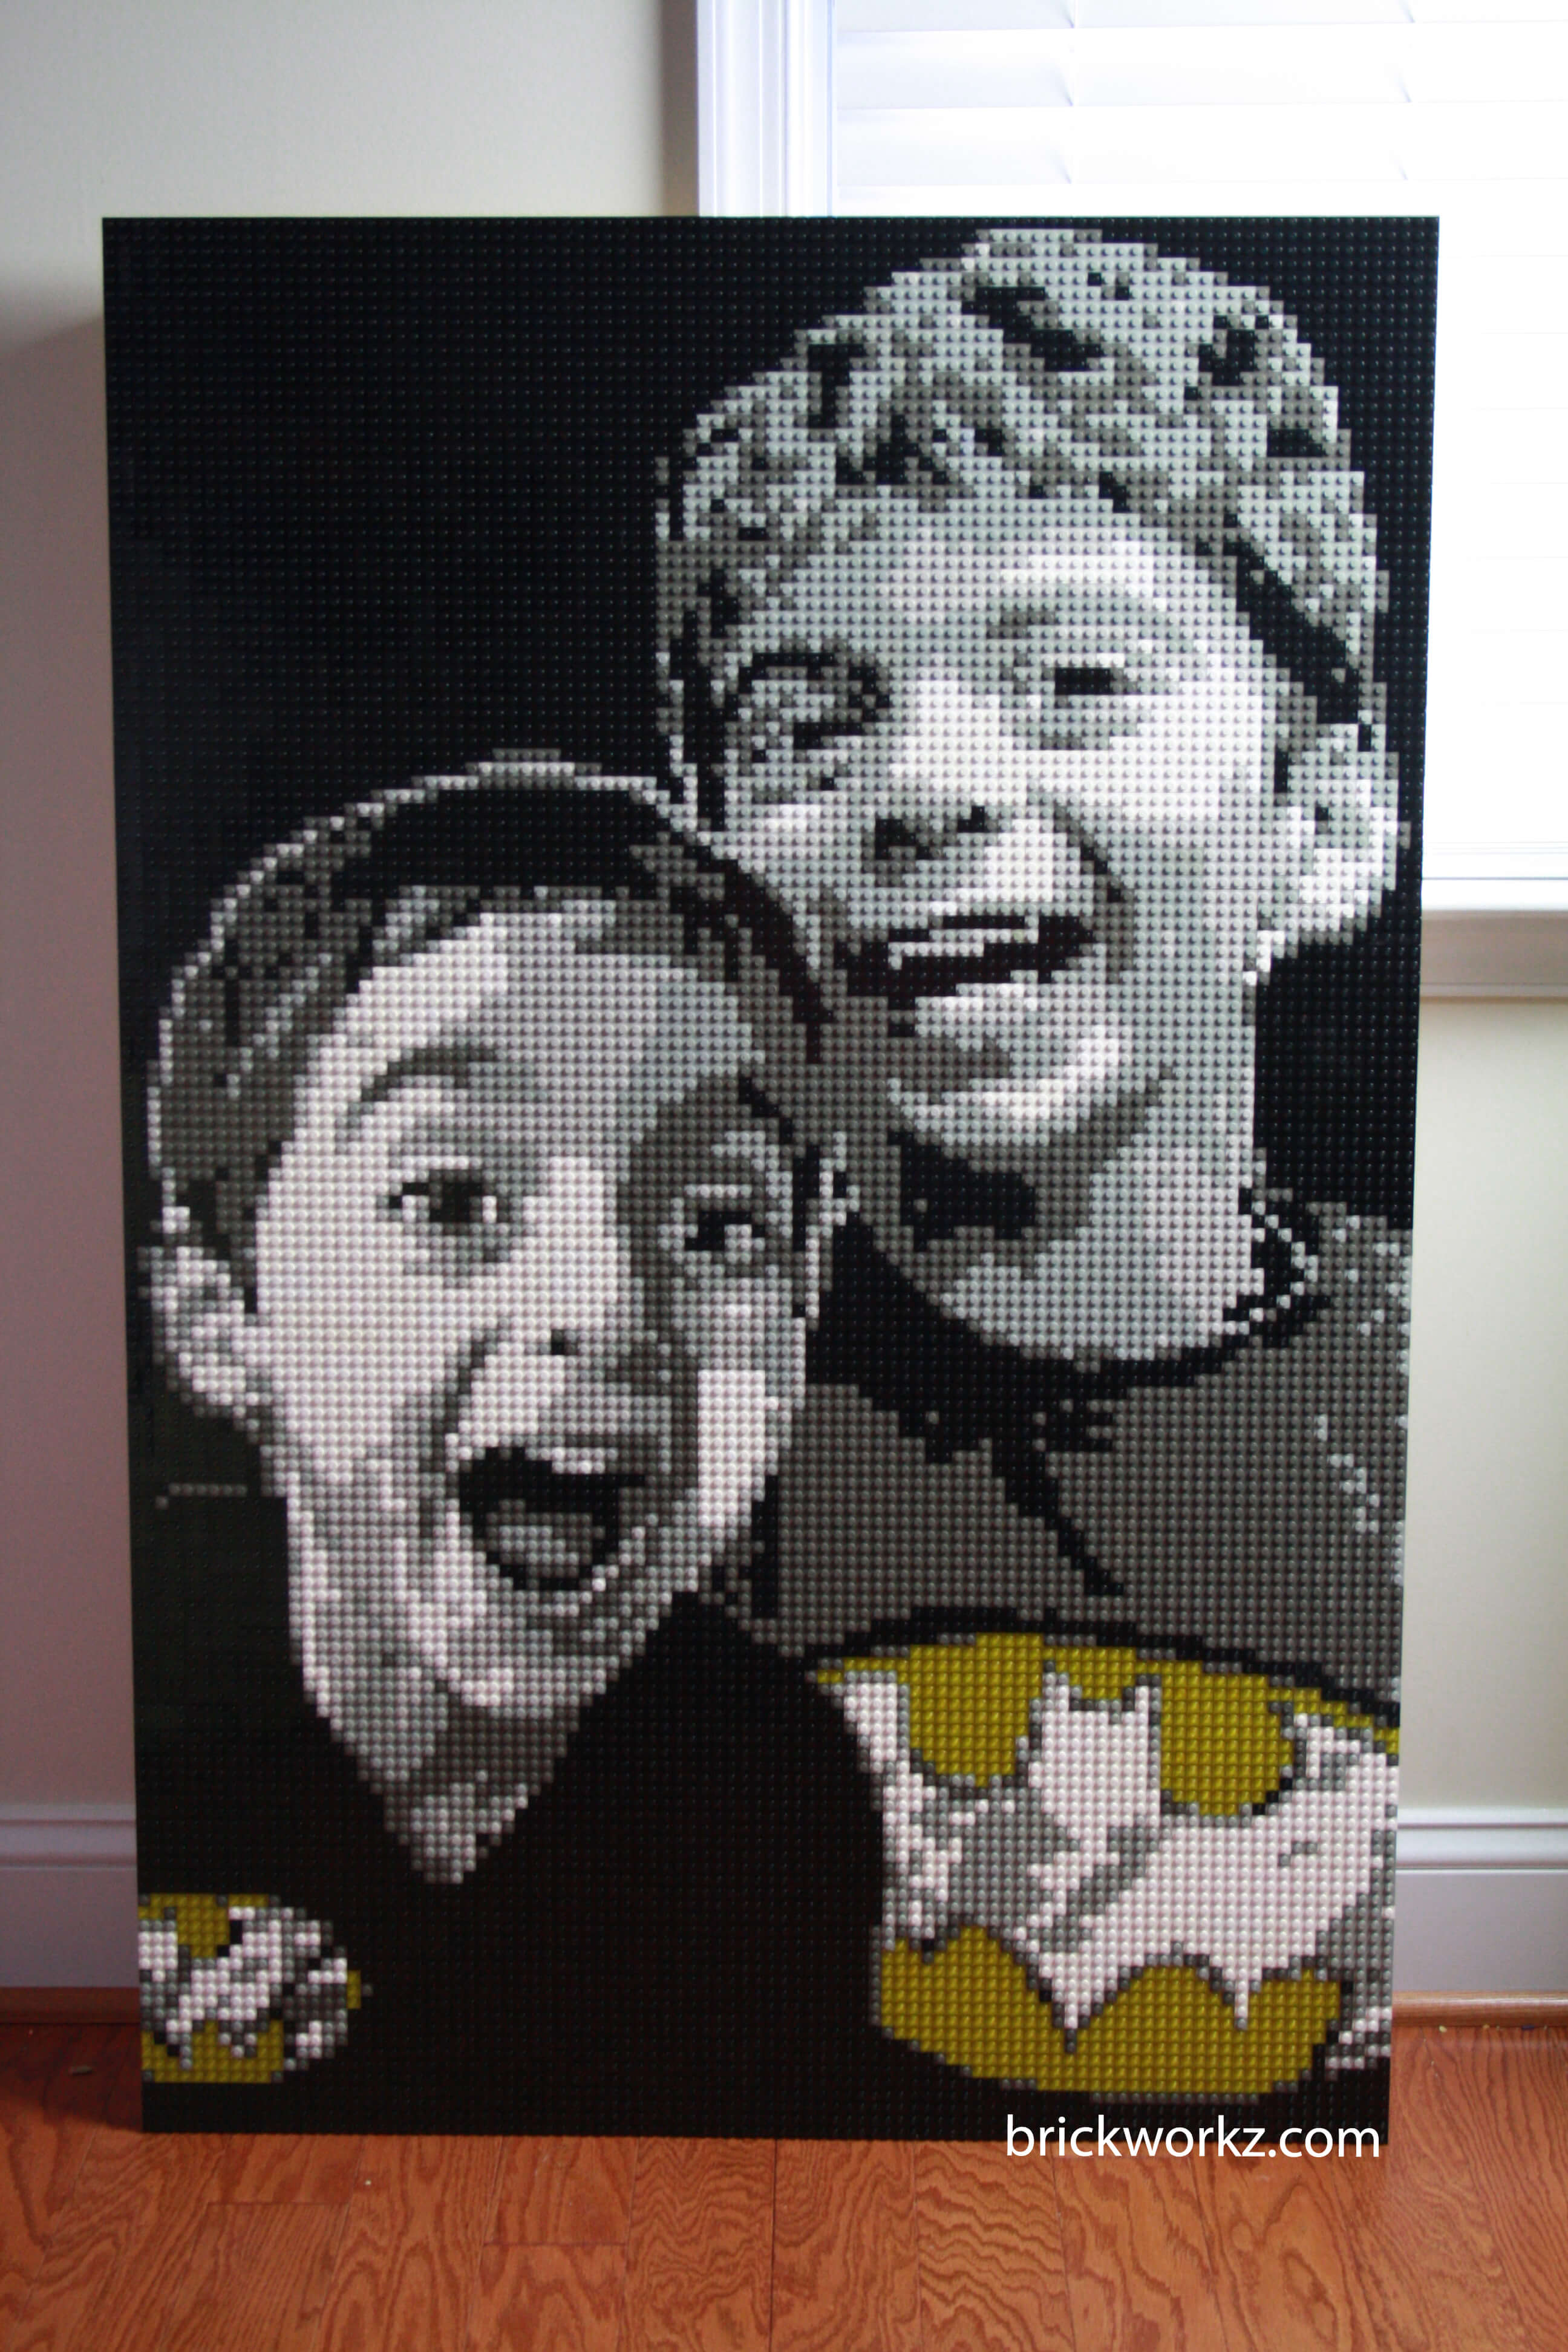 LEGO mosaic portrait of two boys